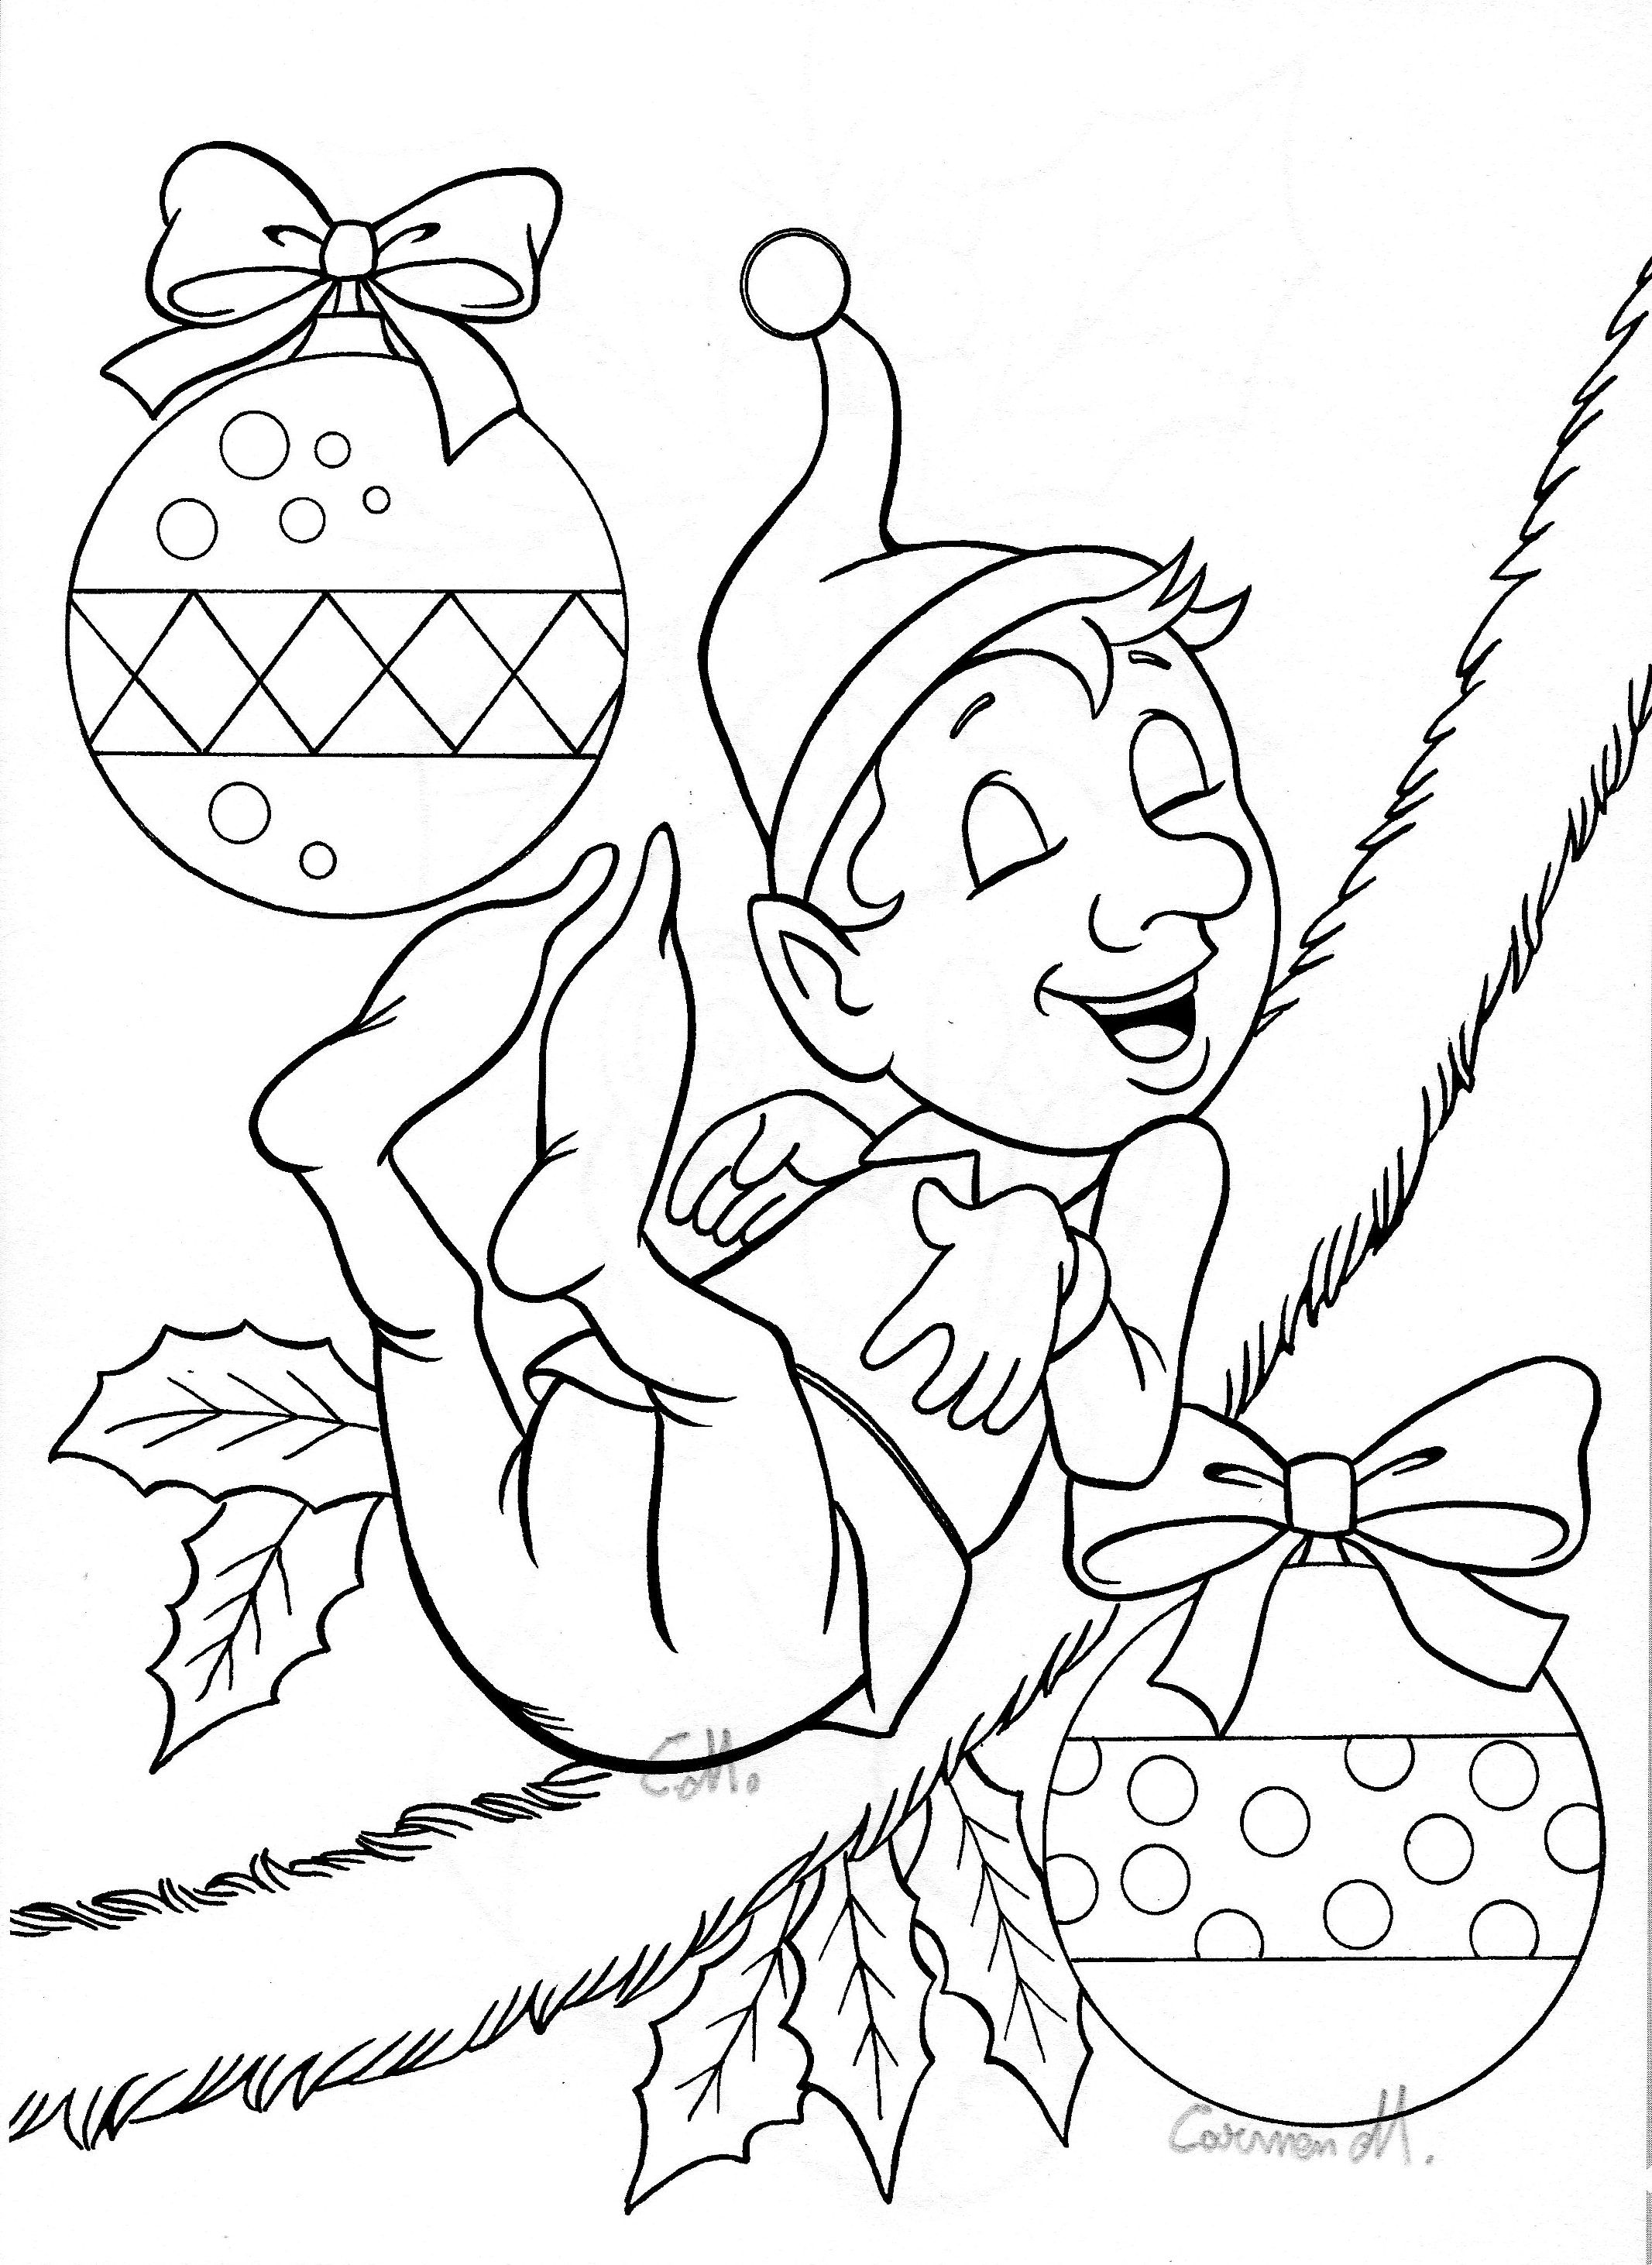 Pin by Bridgett Bezet on Coloring Pages for Template | Pinterest ...